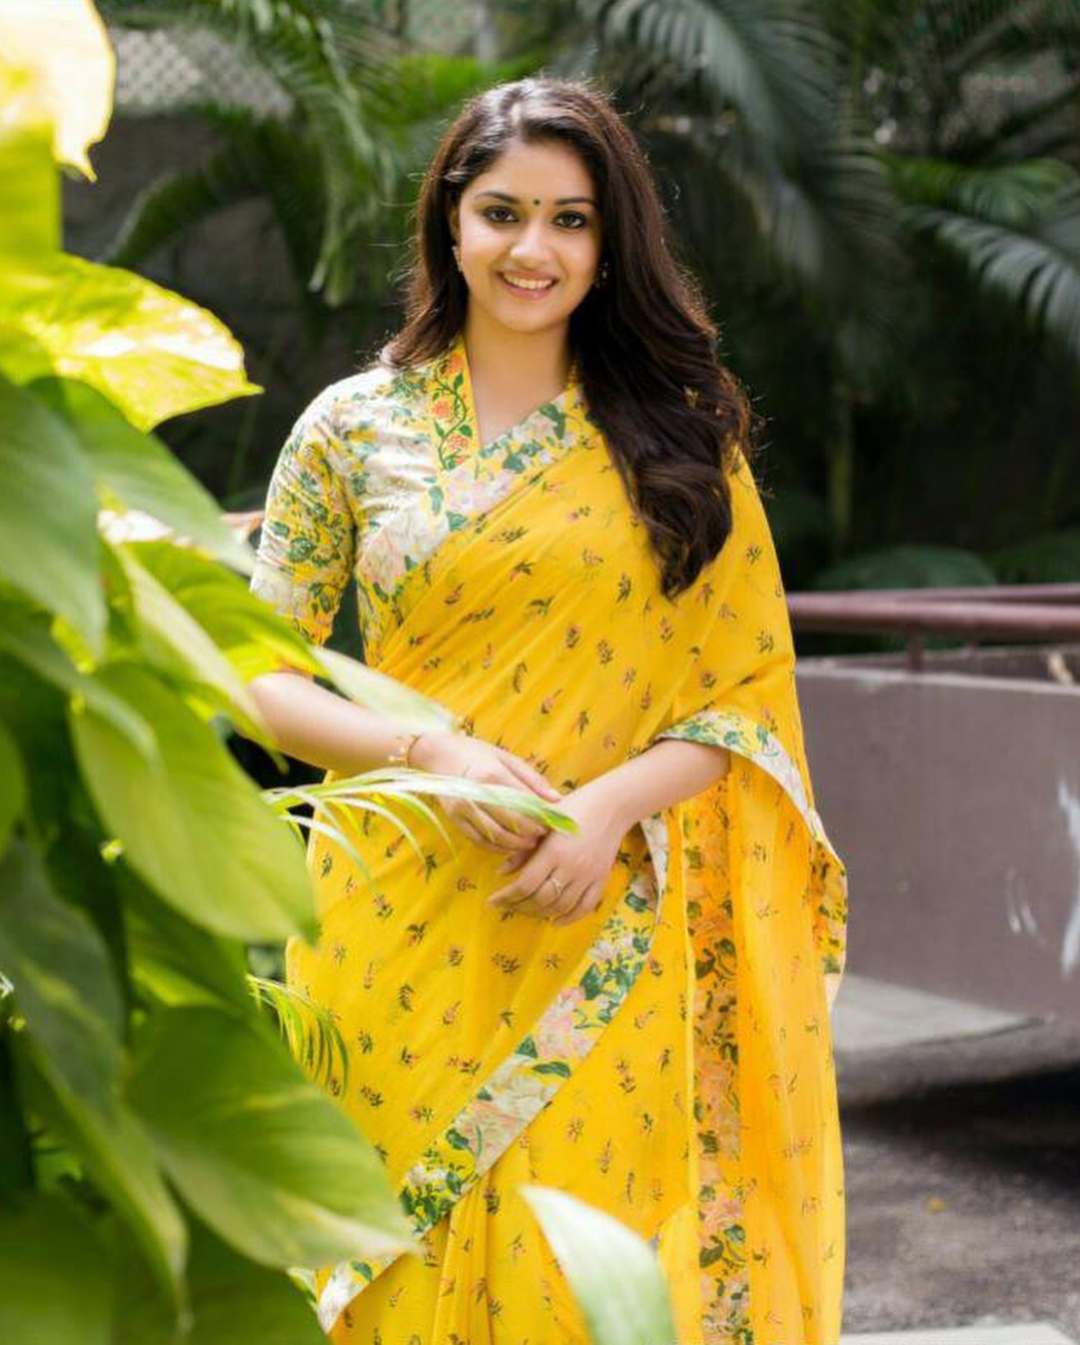 Keerthy Suresh photos | Keerthi Suresh Hot Photos - HD Actress Photo